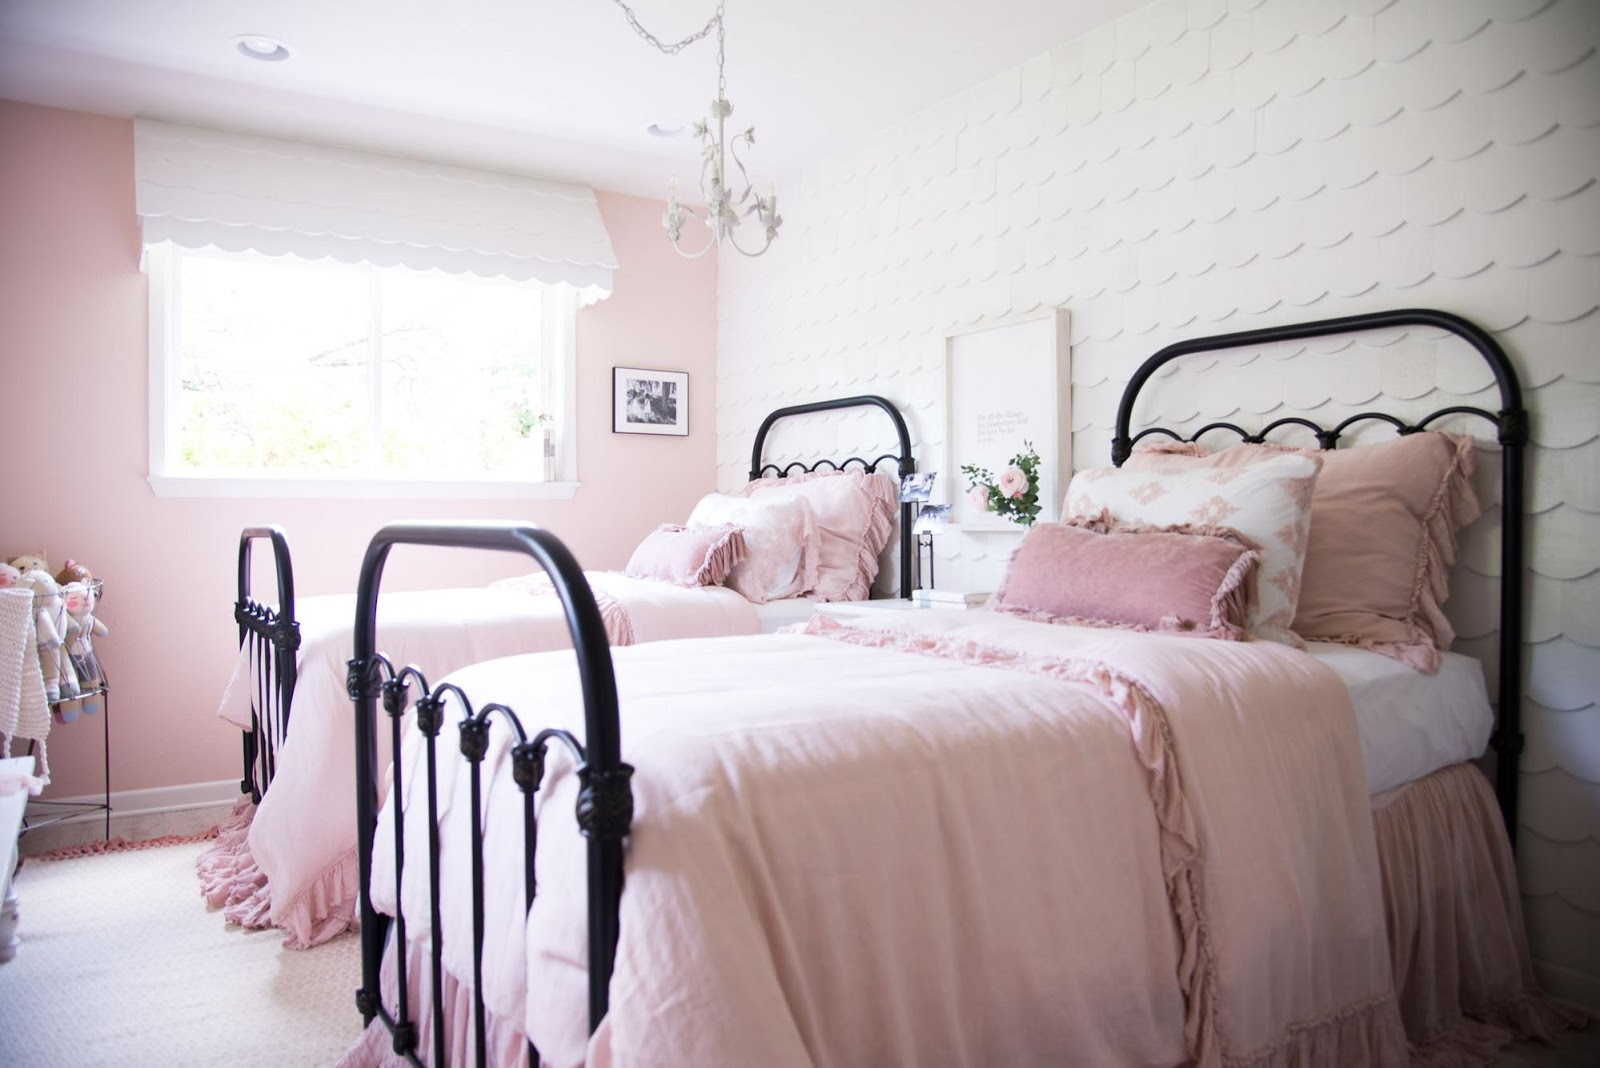 Lavender Fields A Lifestyle Store Bella Notte Bedding As